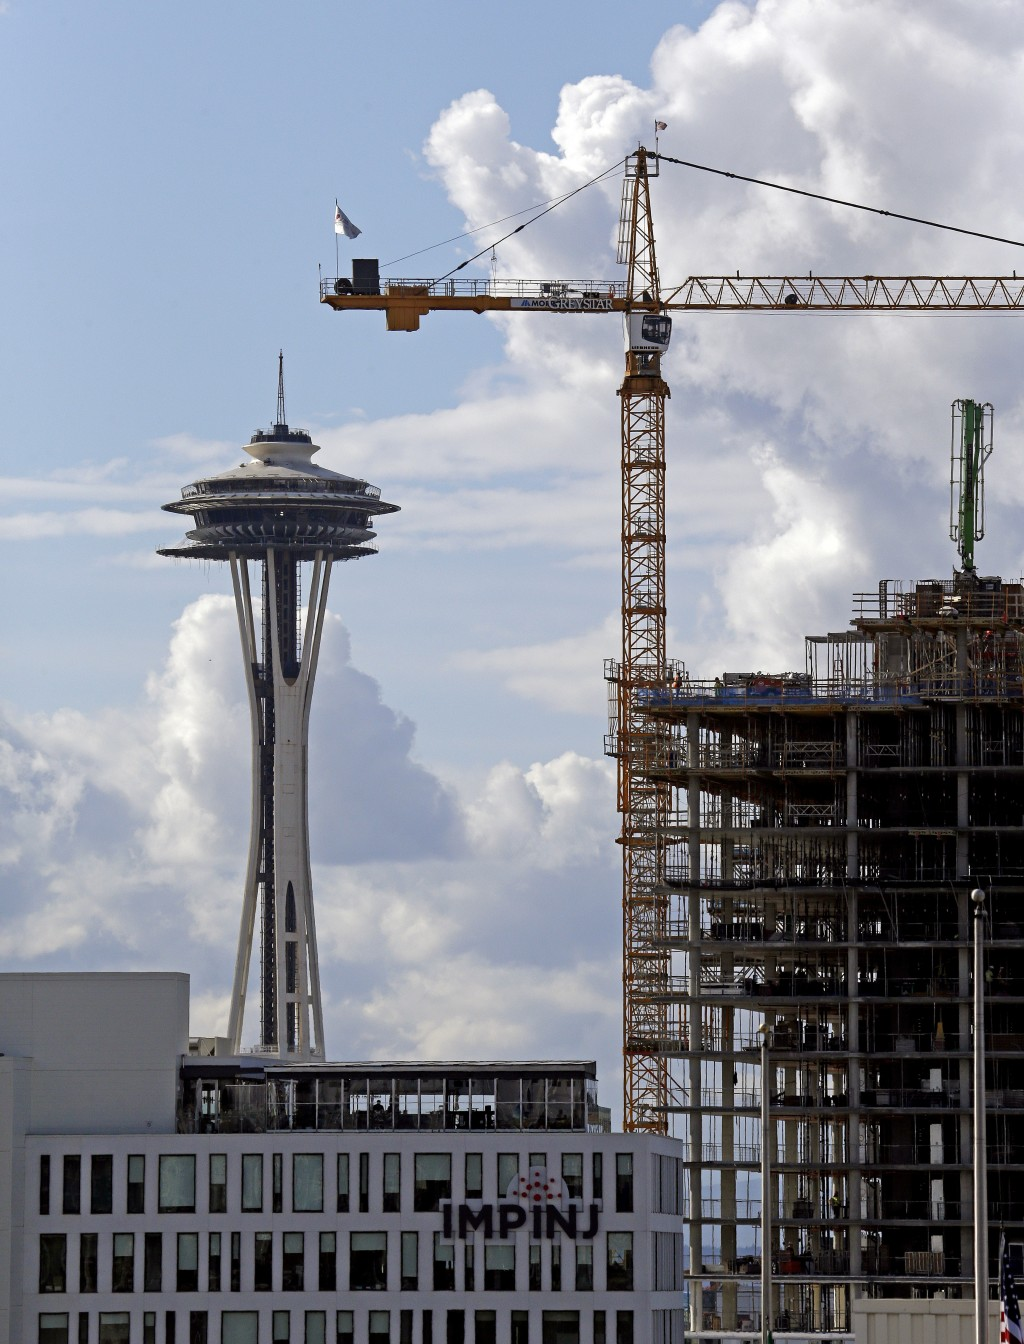 FILE - In this Wednesday, Oct. 11, 2017, file photo, a construction crane stands in view of the Space Needle in Seattle. For years now, much of downto...